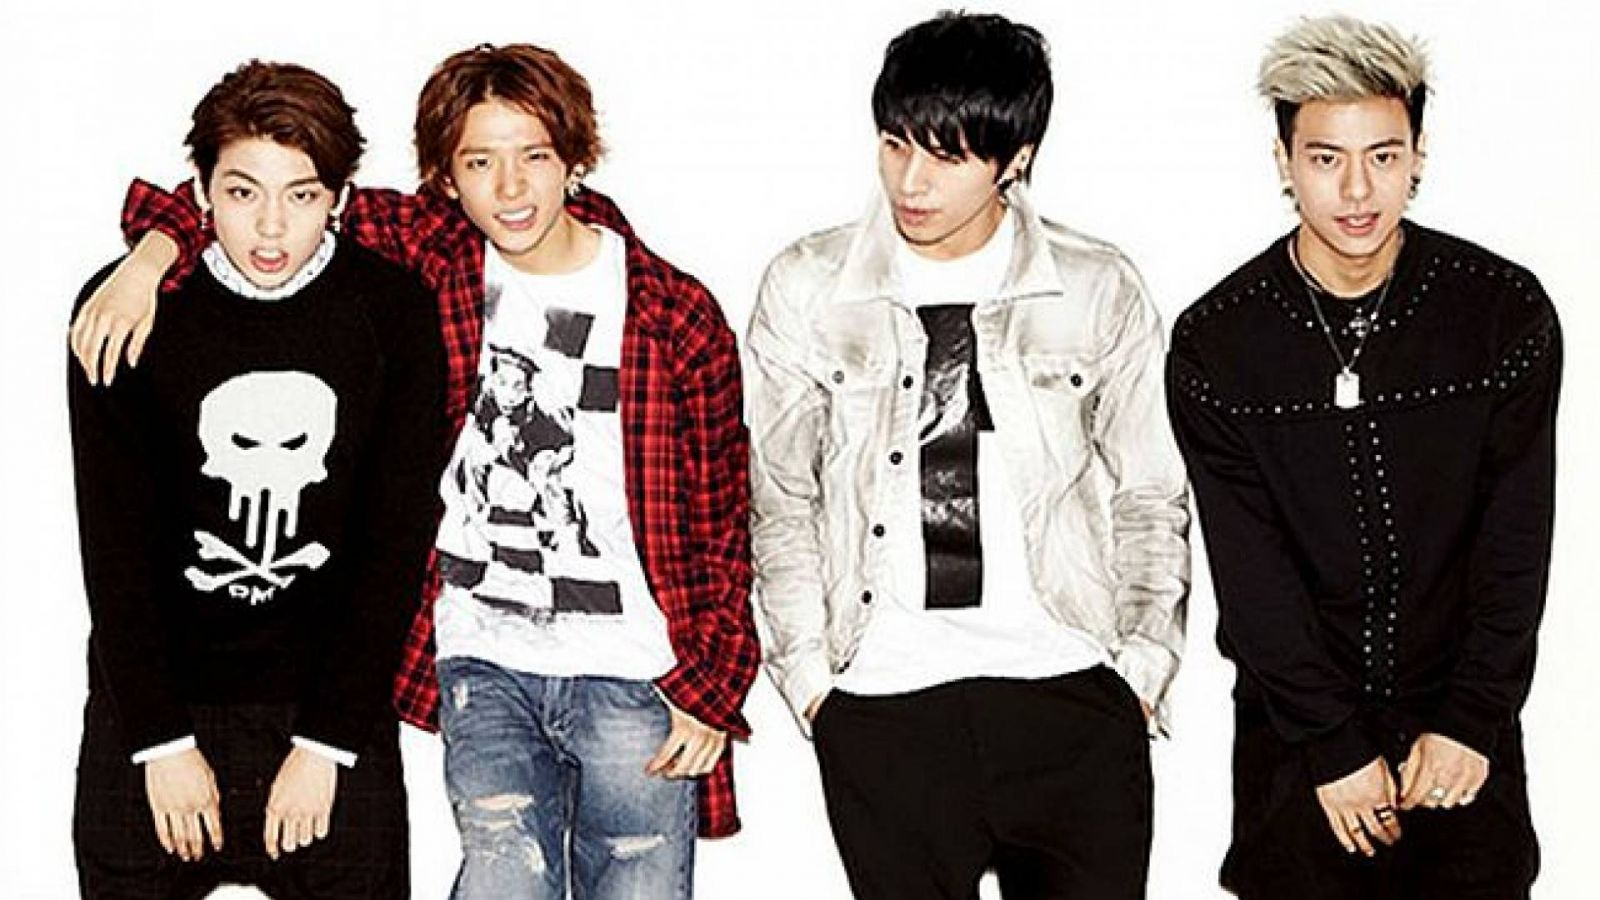 HIGH4 © N.A.P Entertainment